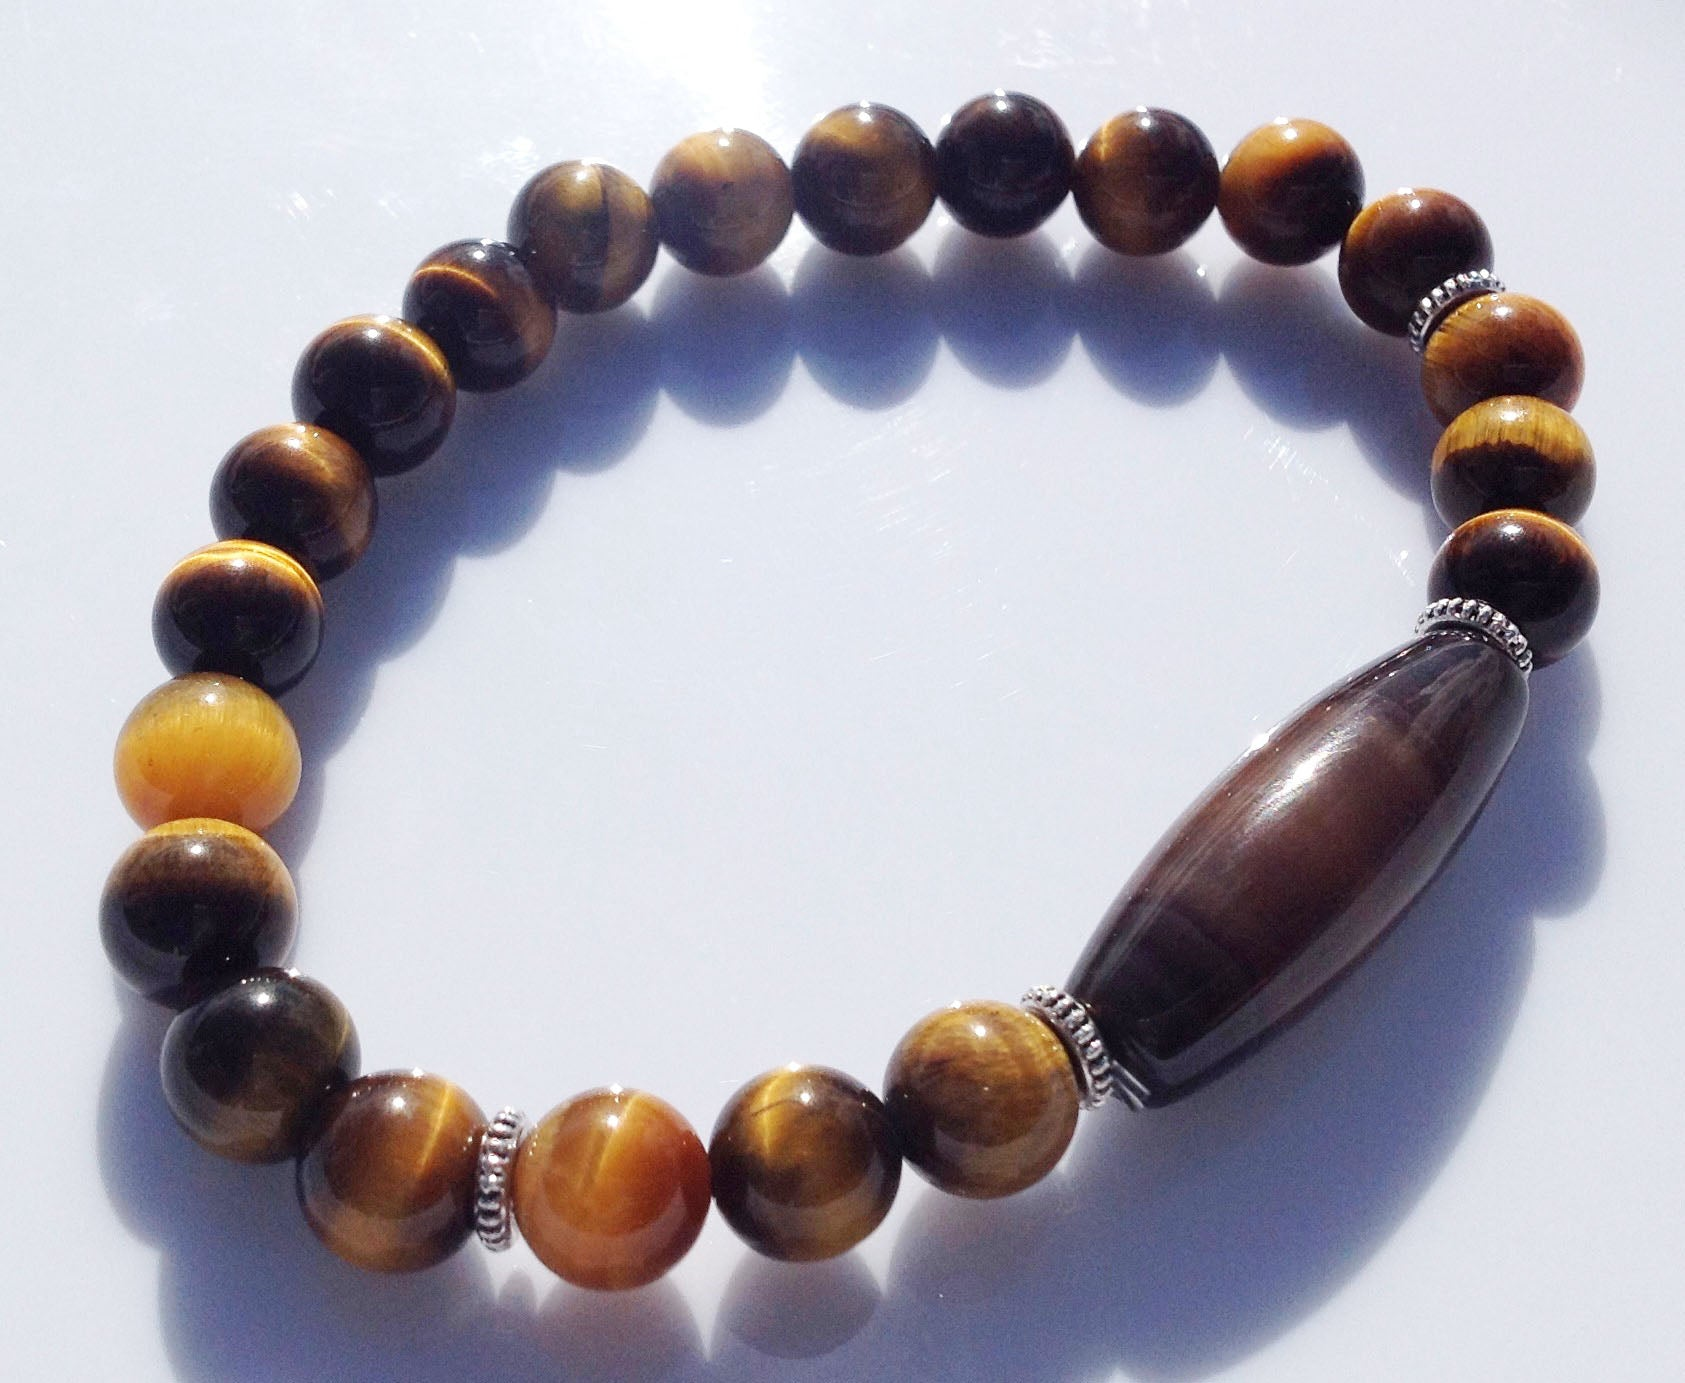 Ancient Dzi Bead Collection Yellow Tiger Eye Stone Yoga Meditation Wrist Mala Bracelet Solar Plexus Crown Chakra Focus Healing Energy Reiki